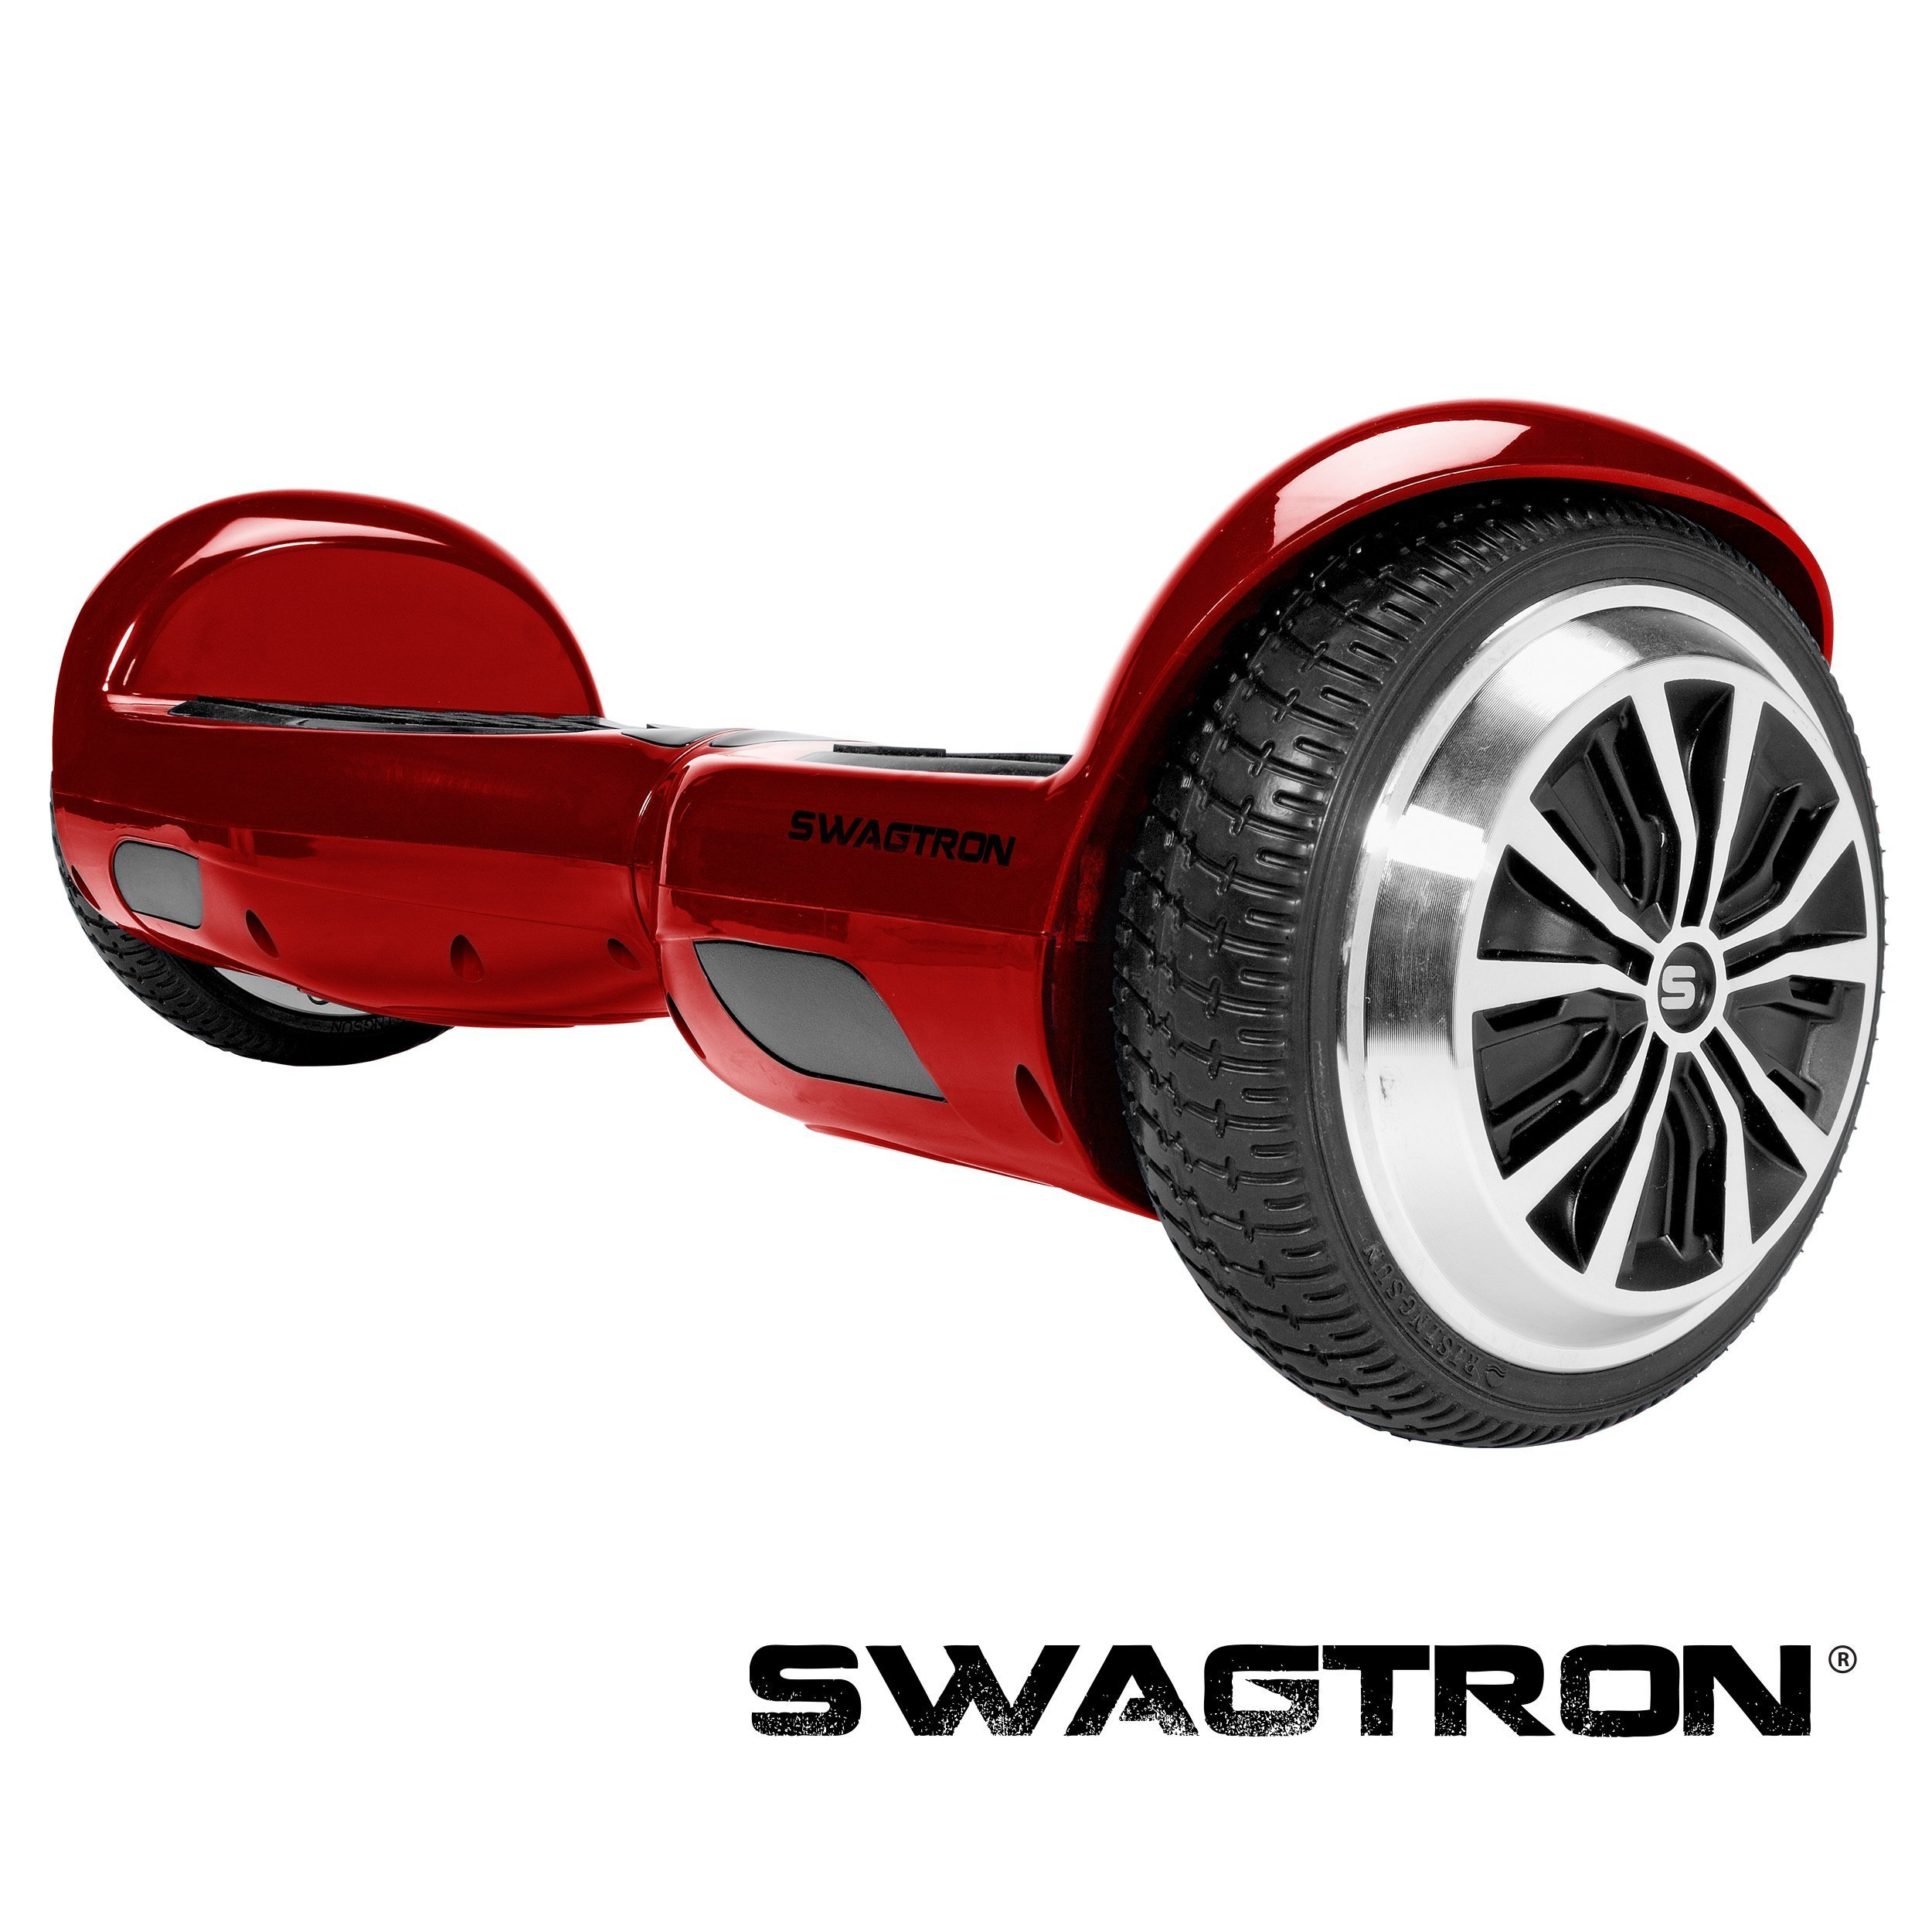 Swagtron Swagboard Pro T1 UL 2272 Certified Hoverboard Electric Self-Balancing Scooter - Your Swag Personal Transporter Awaits You by Swagtron